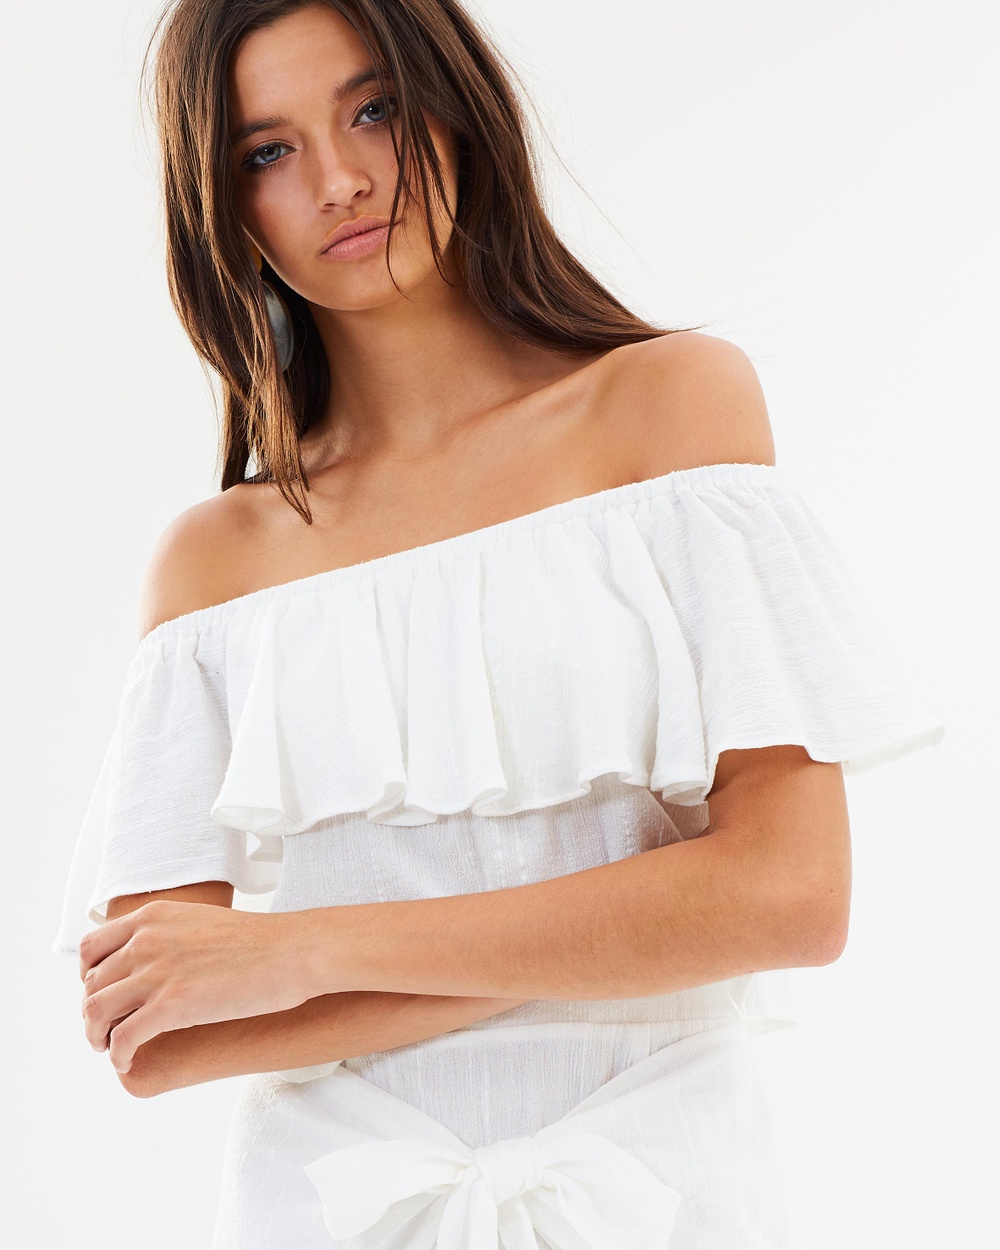 Dazie Rito Off the Shoulder Frill Top Cropped tops White Rito Off-the-Shoulder Frill Top